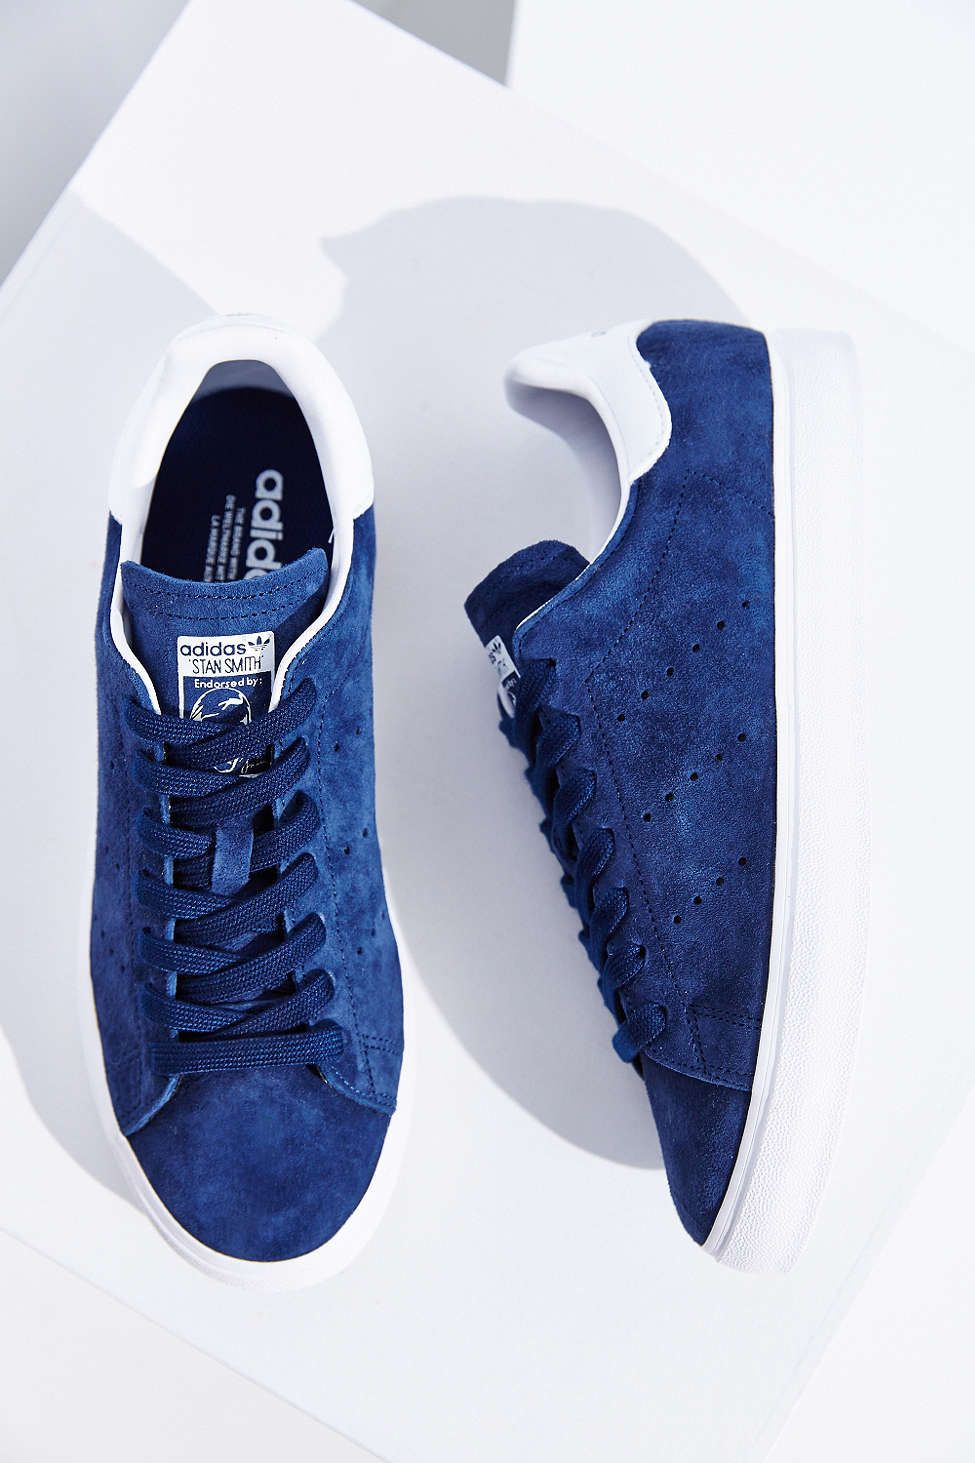 74bcd4274f2 love it in blue suede...adidas originals stan smith